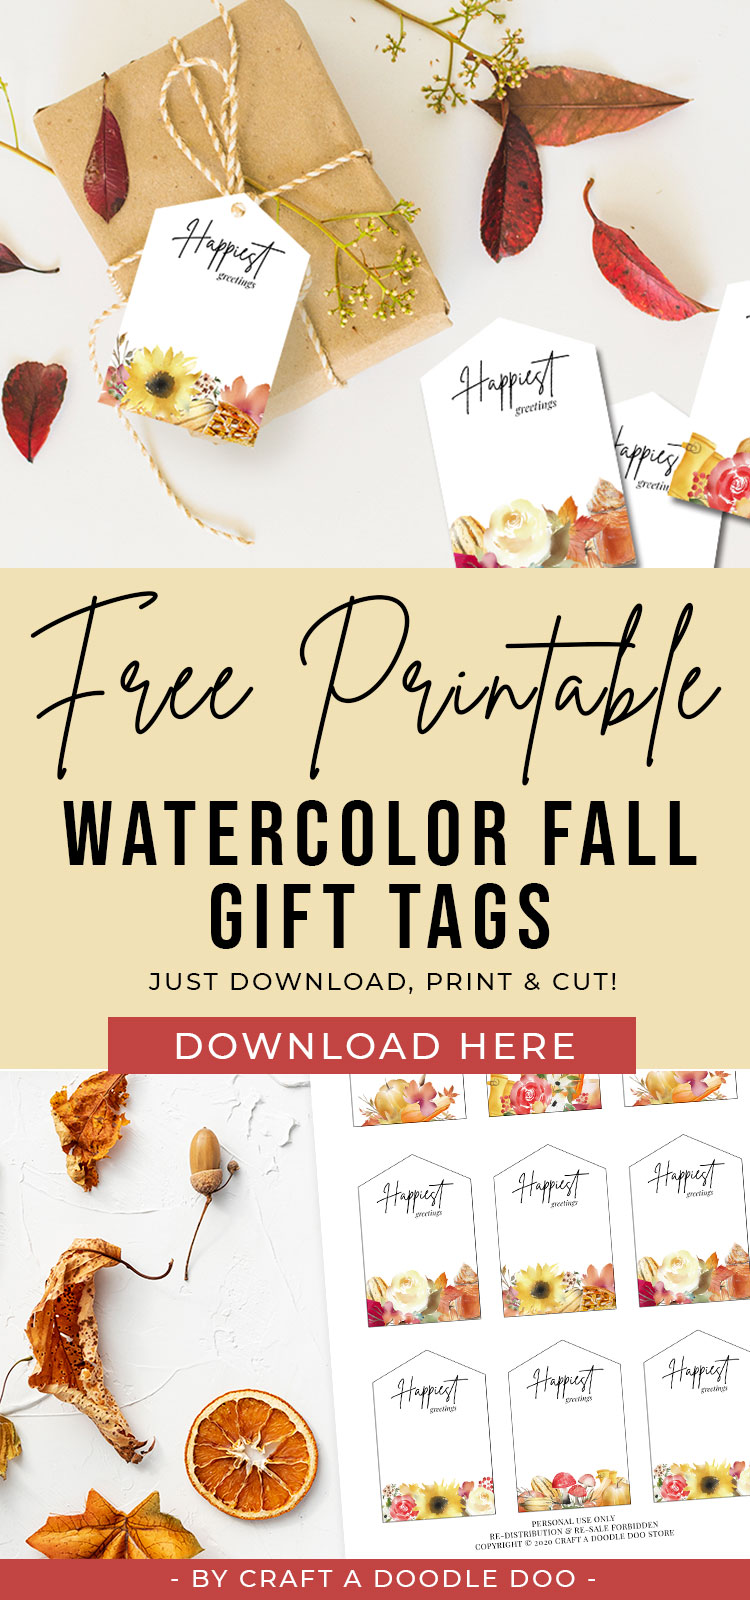 Free Printable Fall Gift Tags, Watercolor Autumn Giftwrap tags, DIY thanksgiving tags